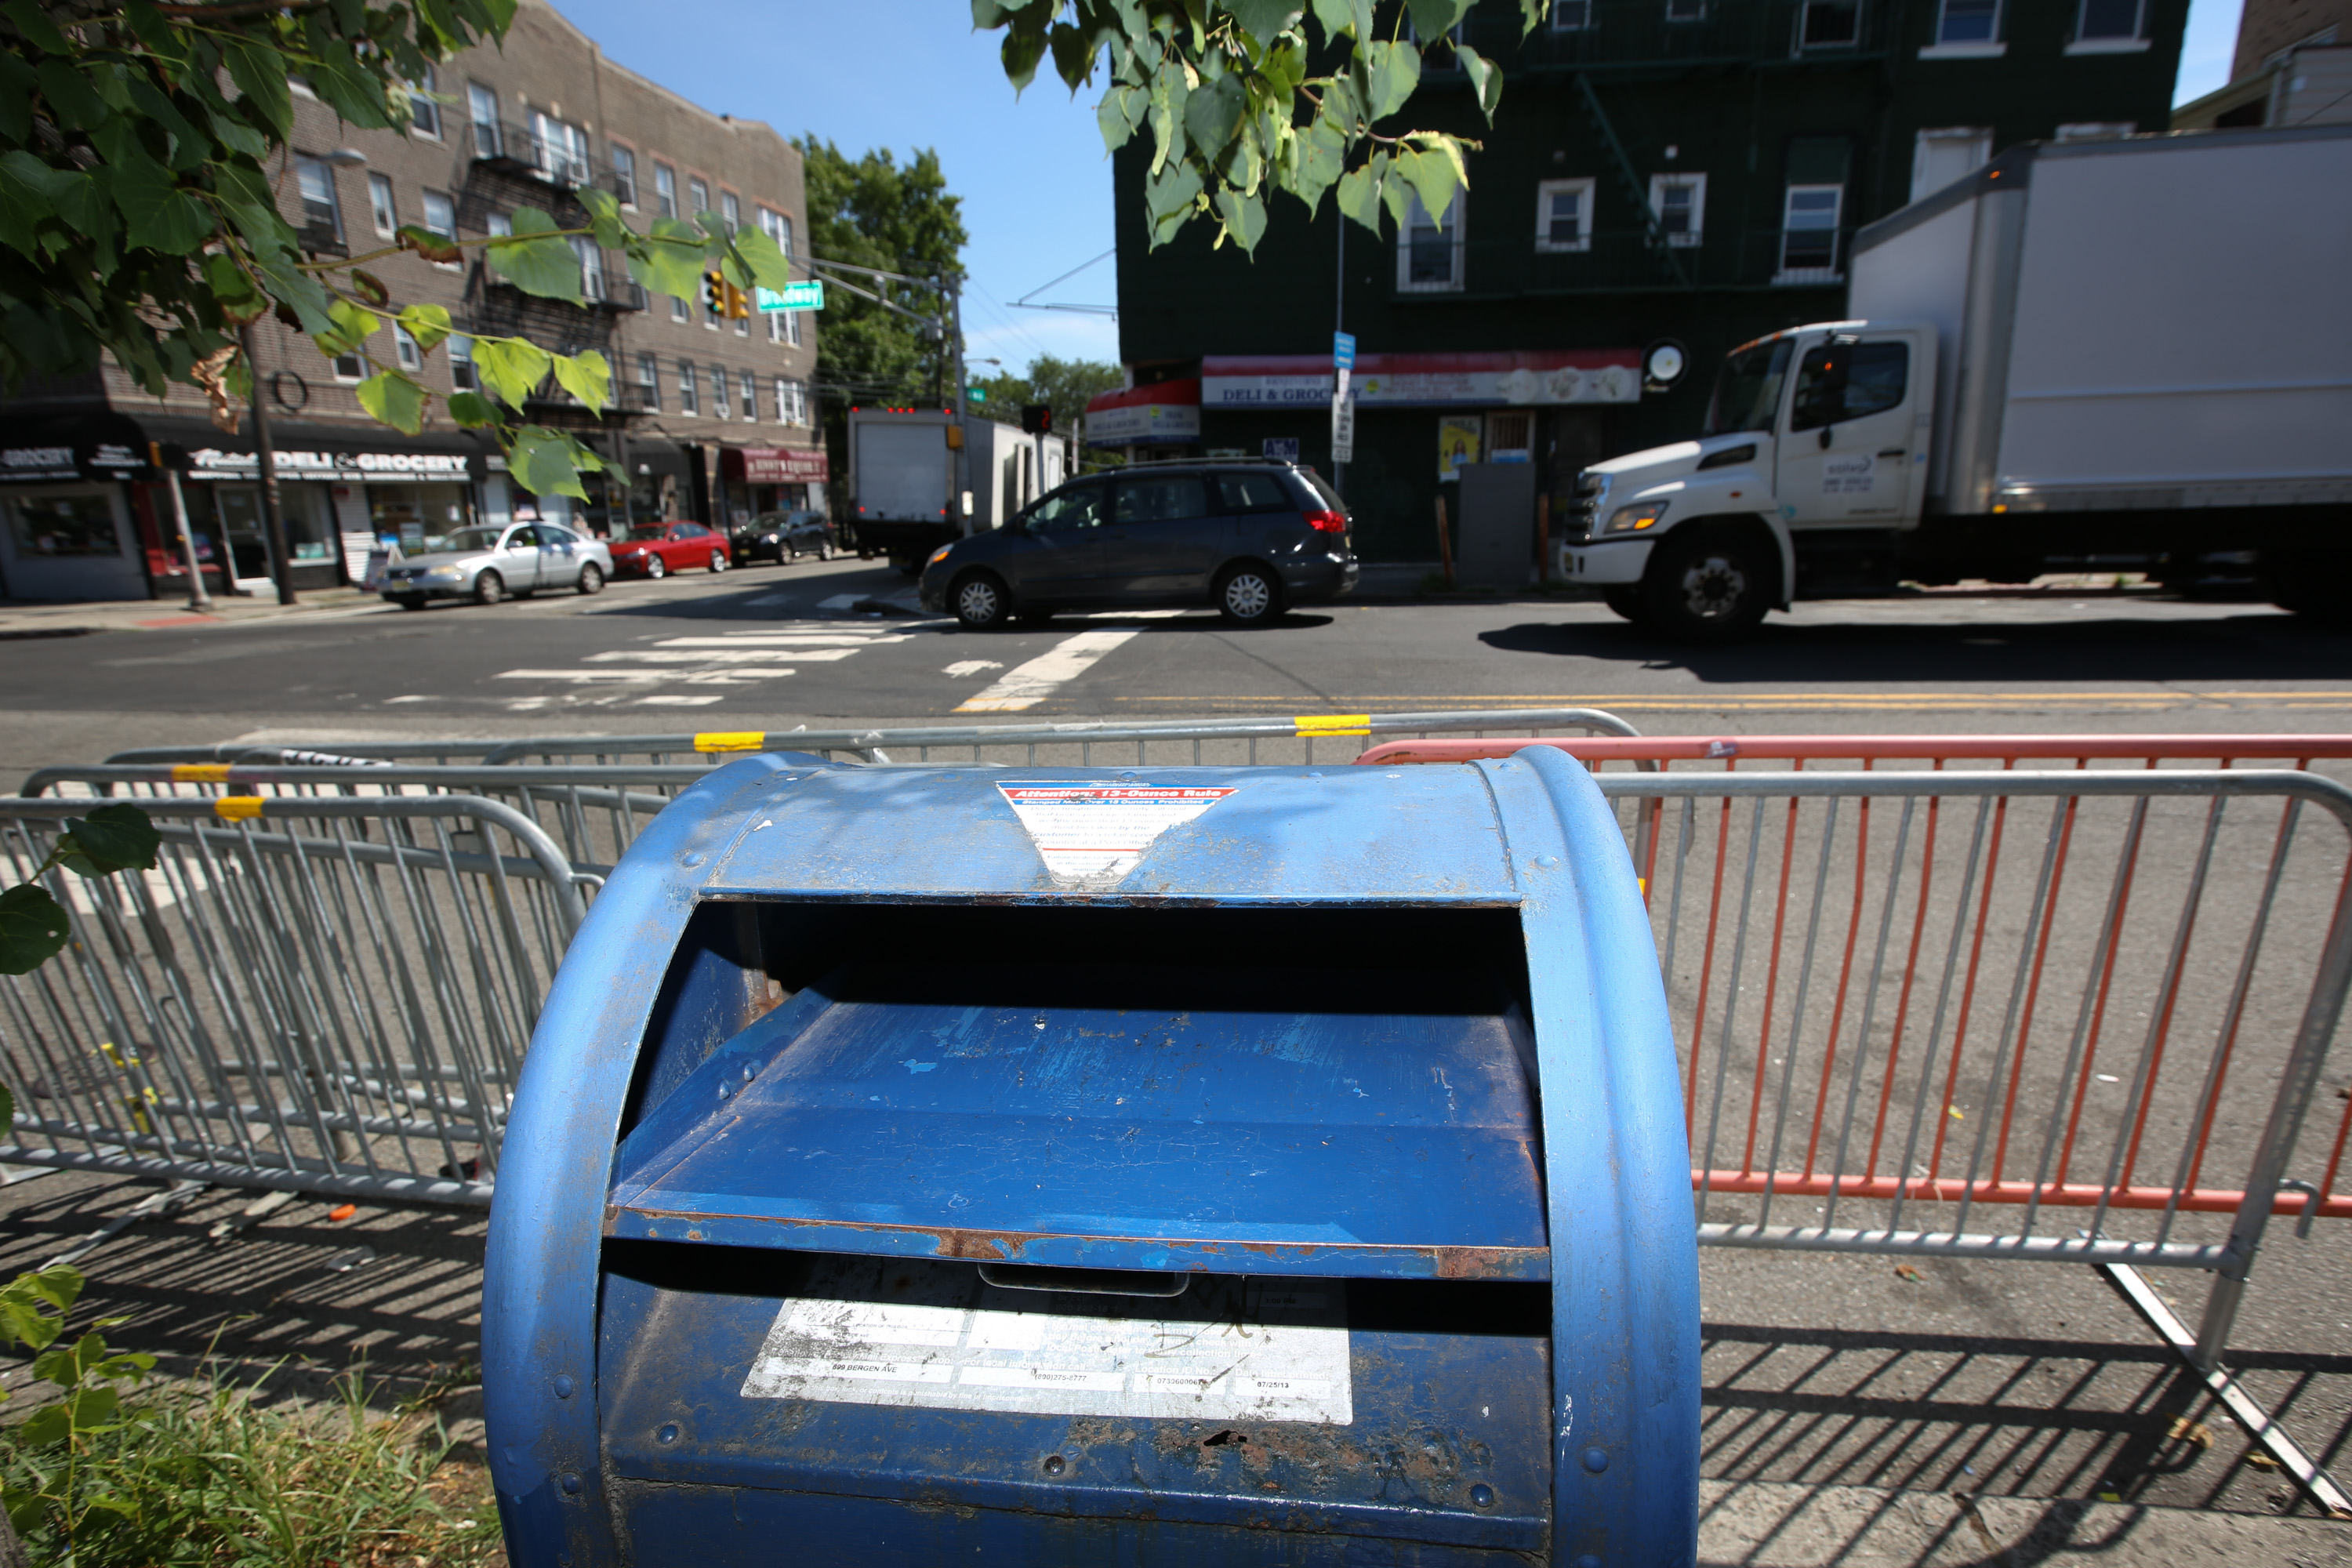 Here's a warning for people still using those old blue postal mailboxes